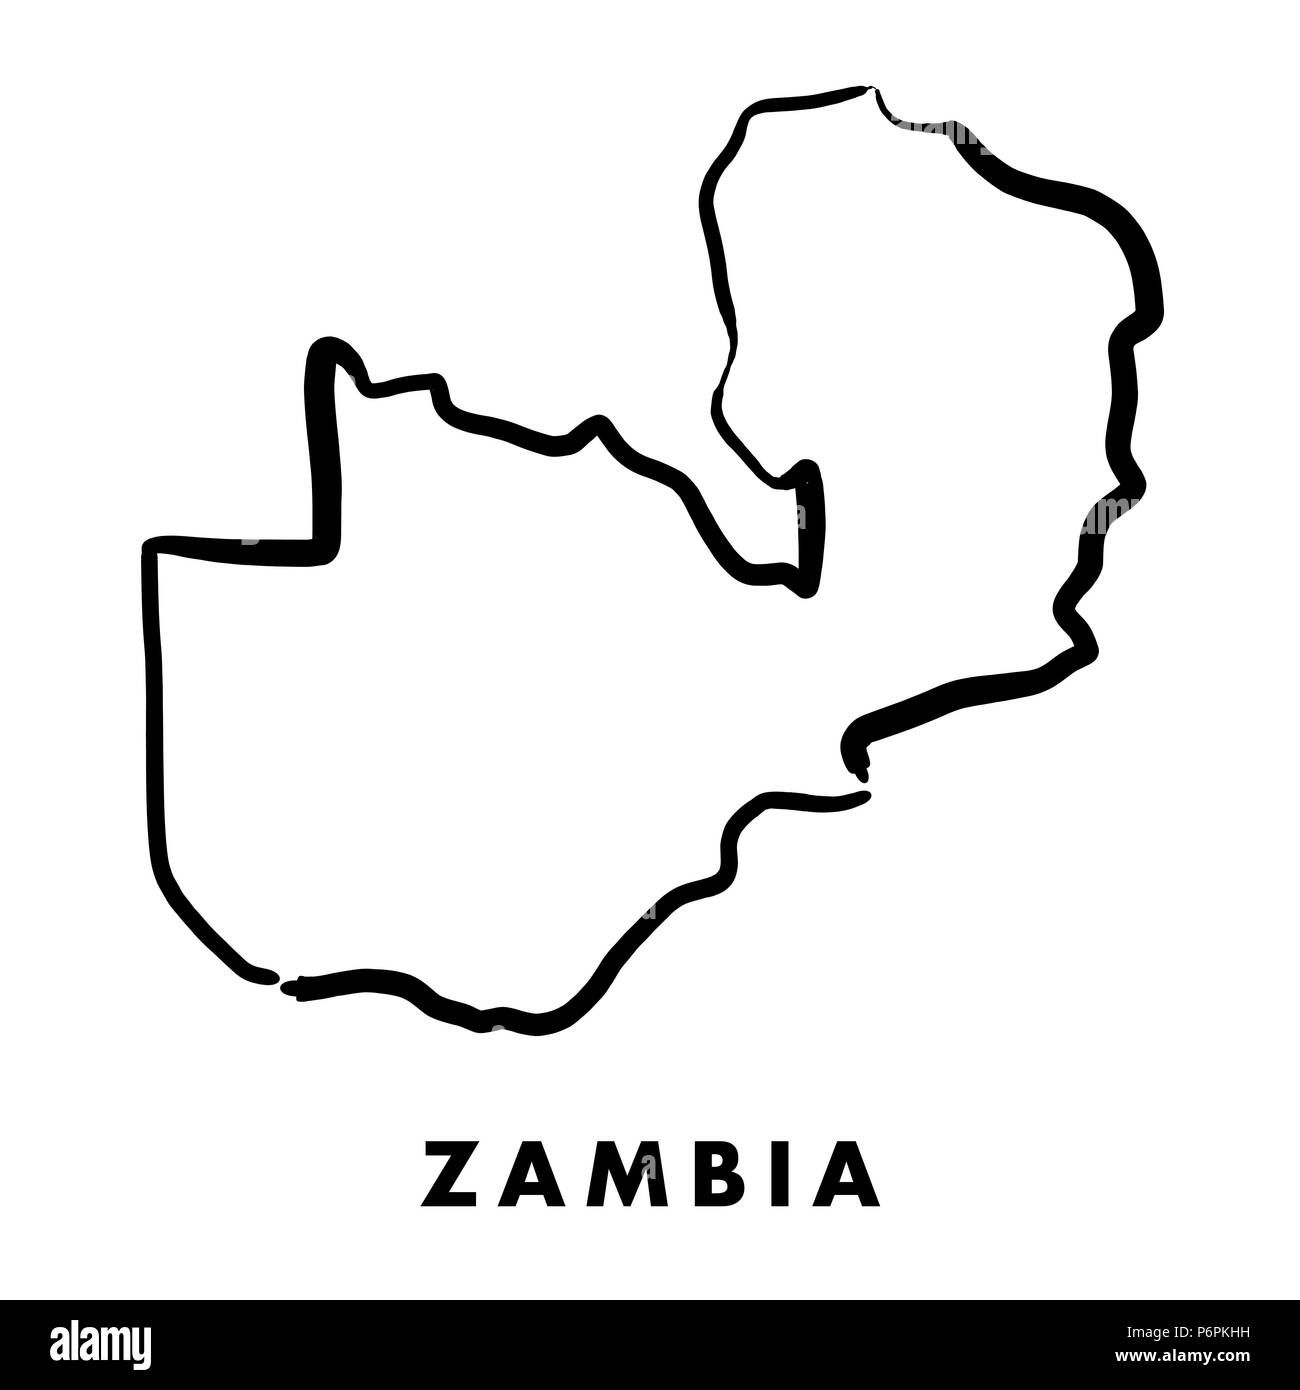 Zambian Map Vector.Zambia Simple Map Outline Smooth Simplified Country Shape